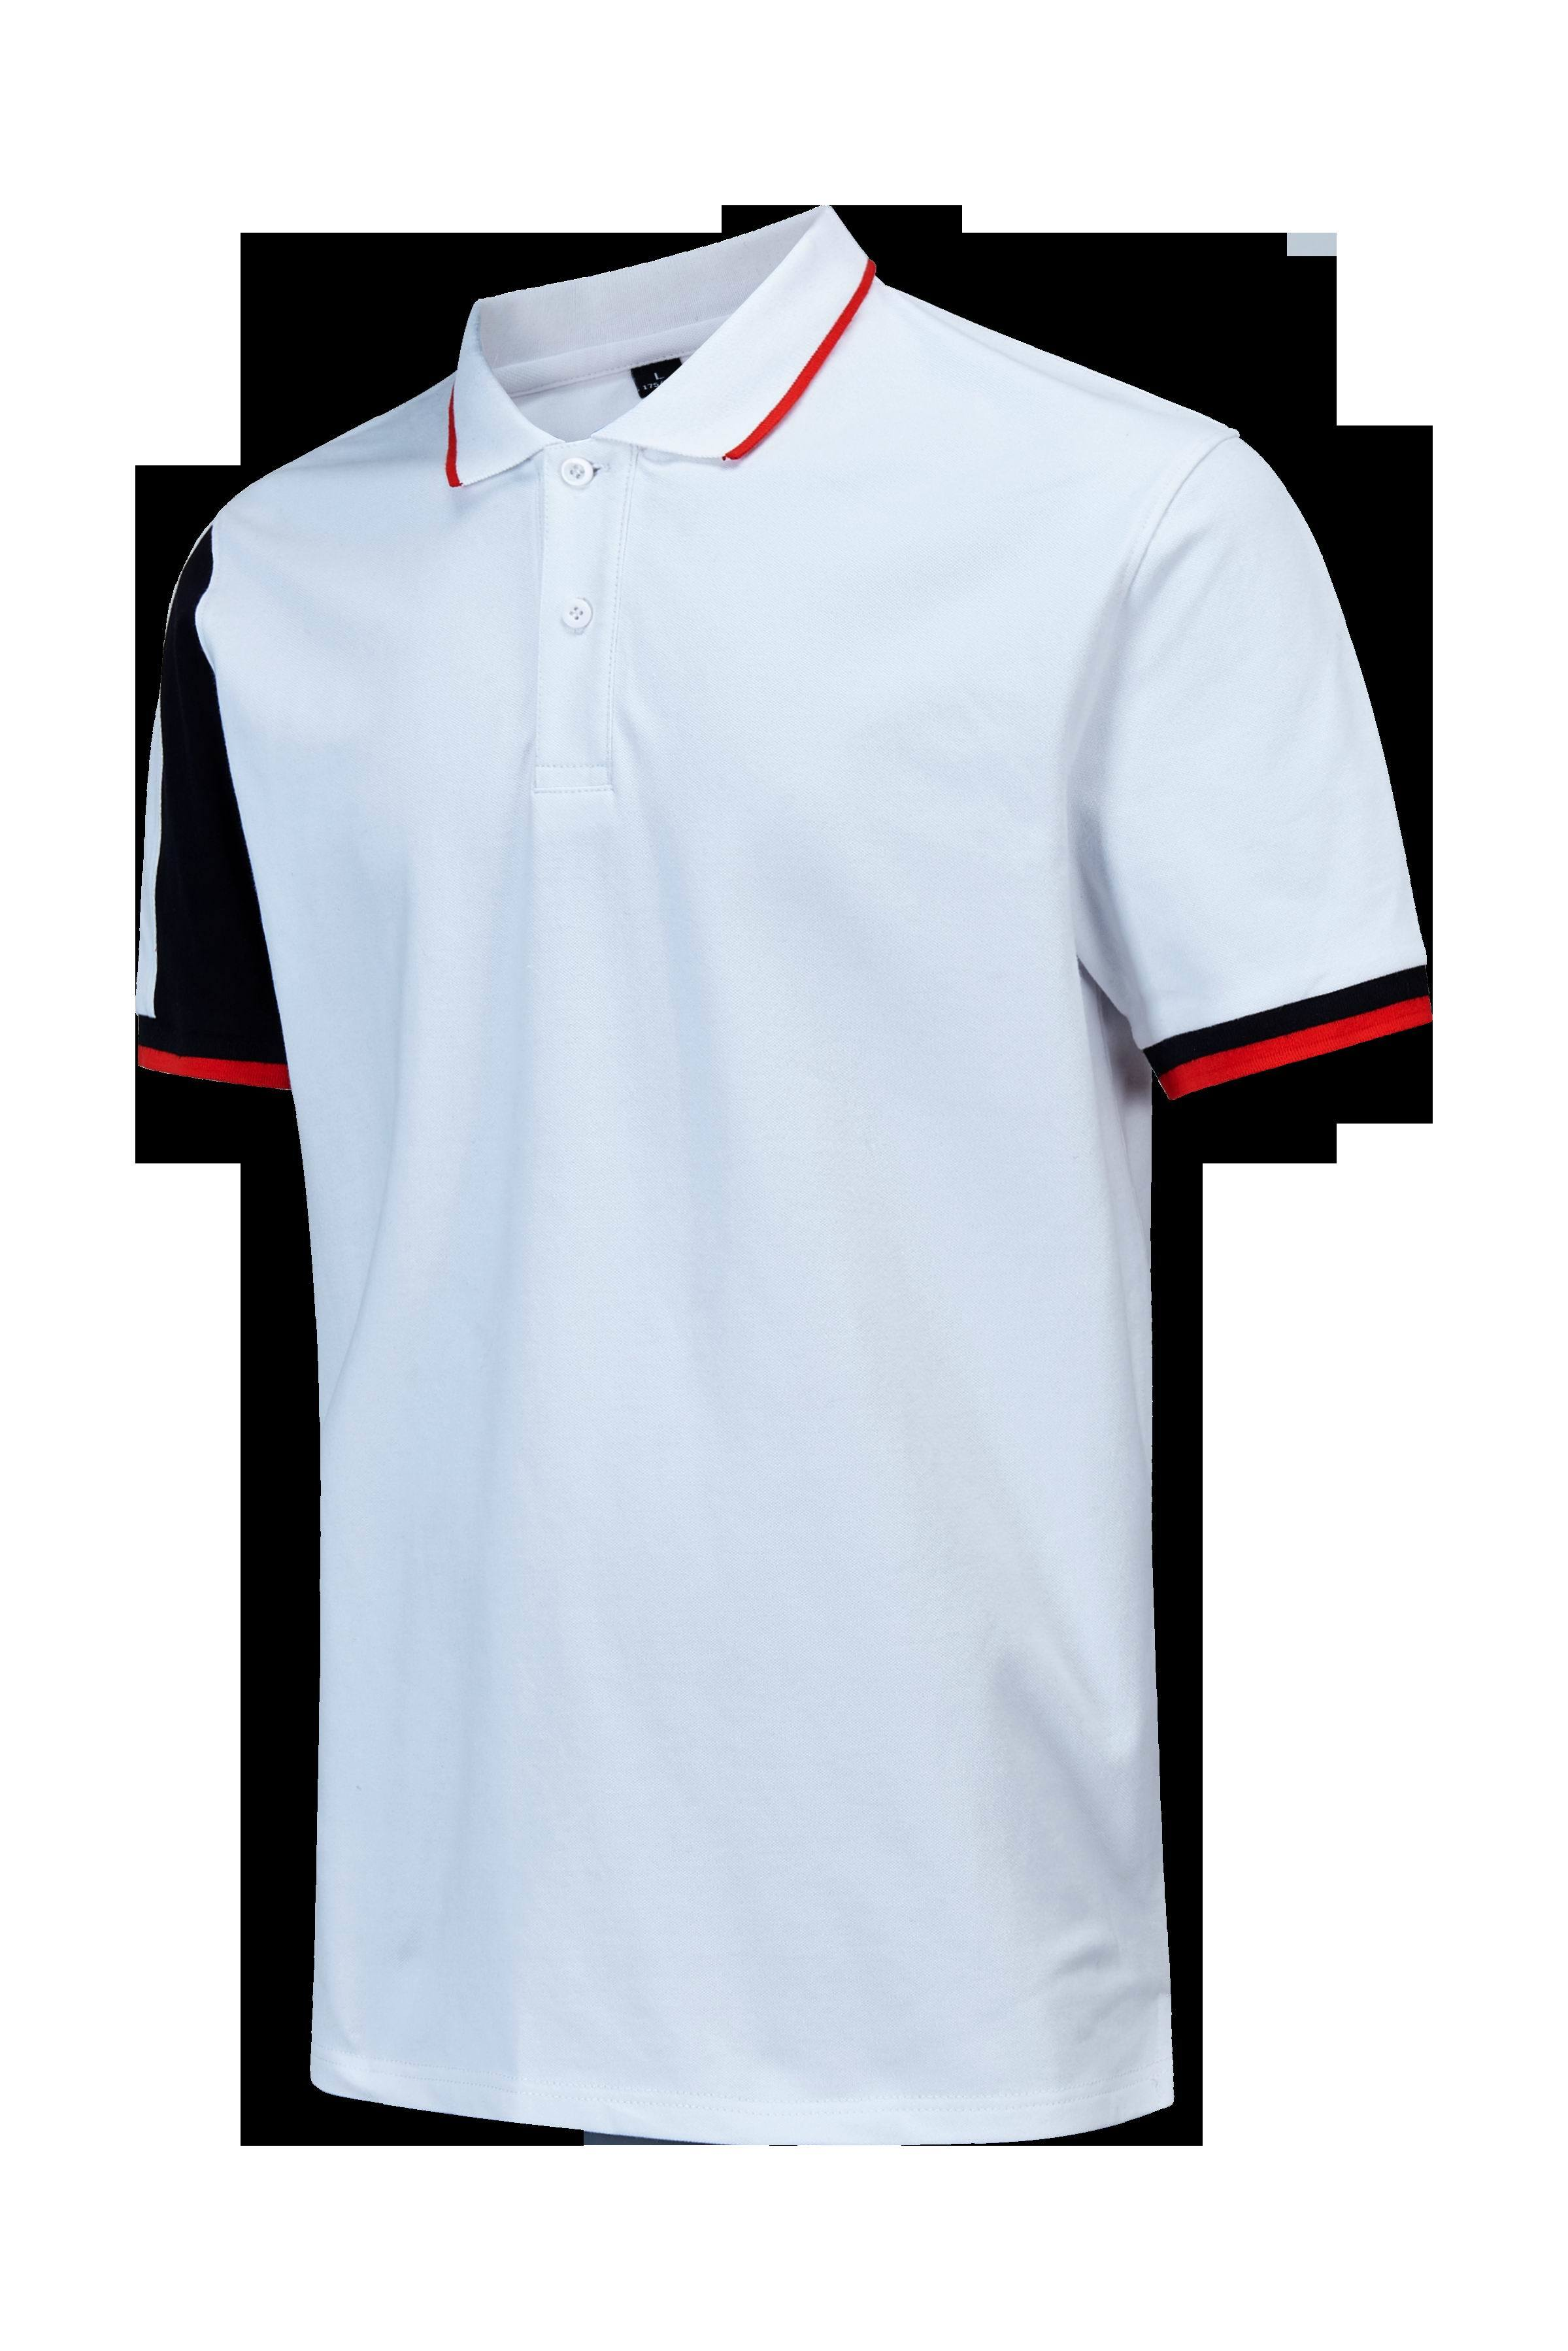 [Hot Item] Mixed Colors New Style Company Unfiorm Wear Polo Shirt